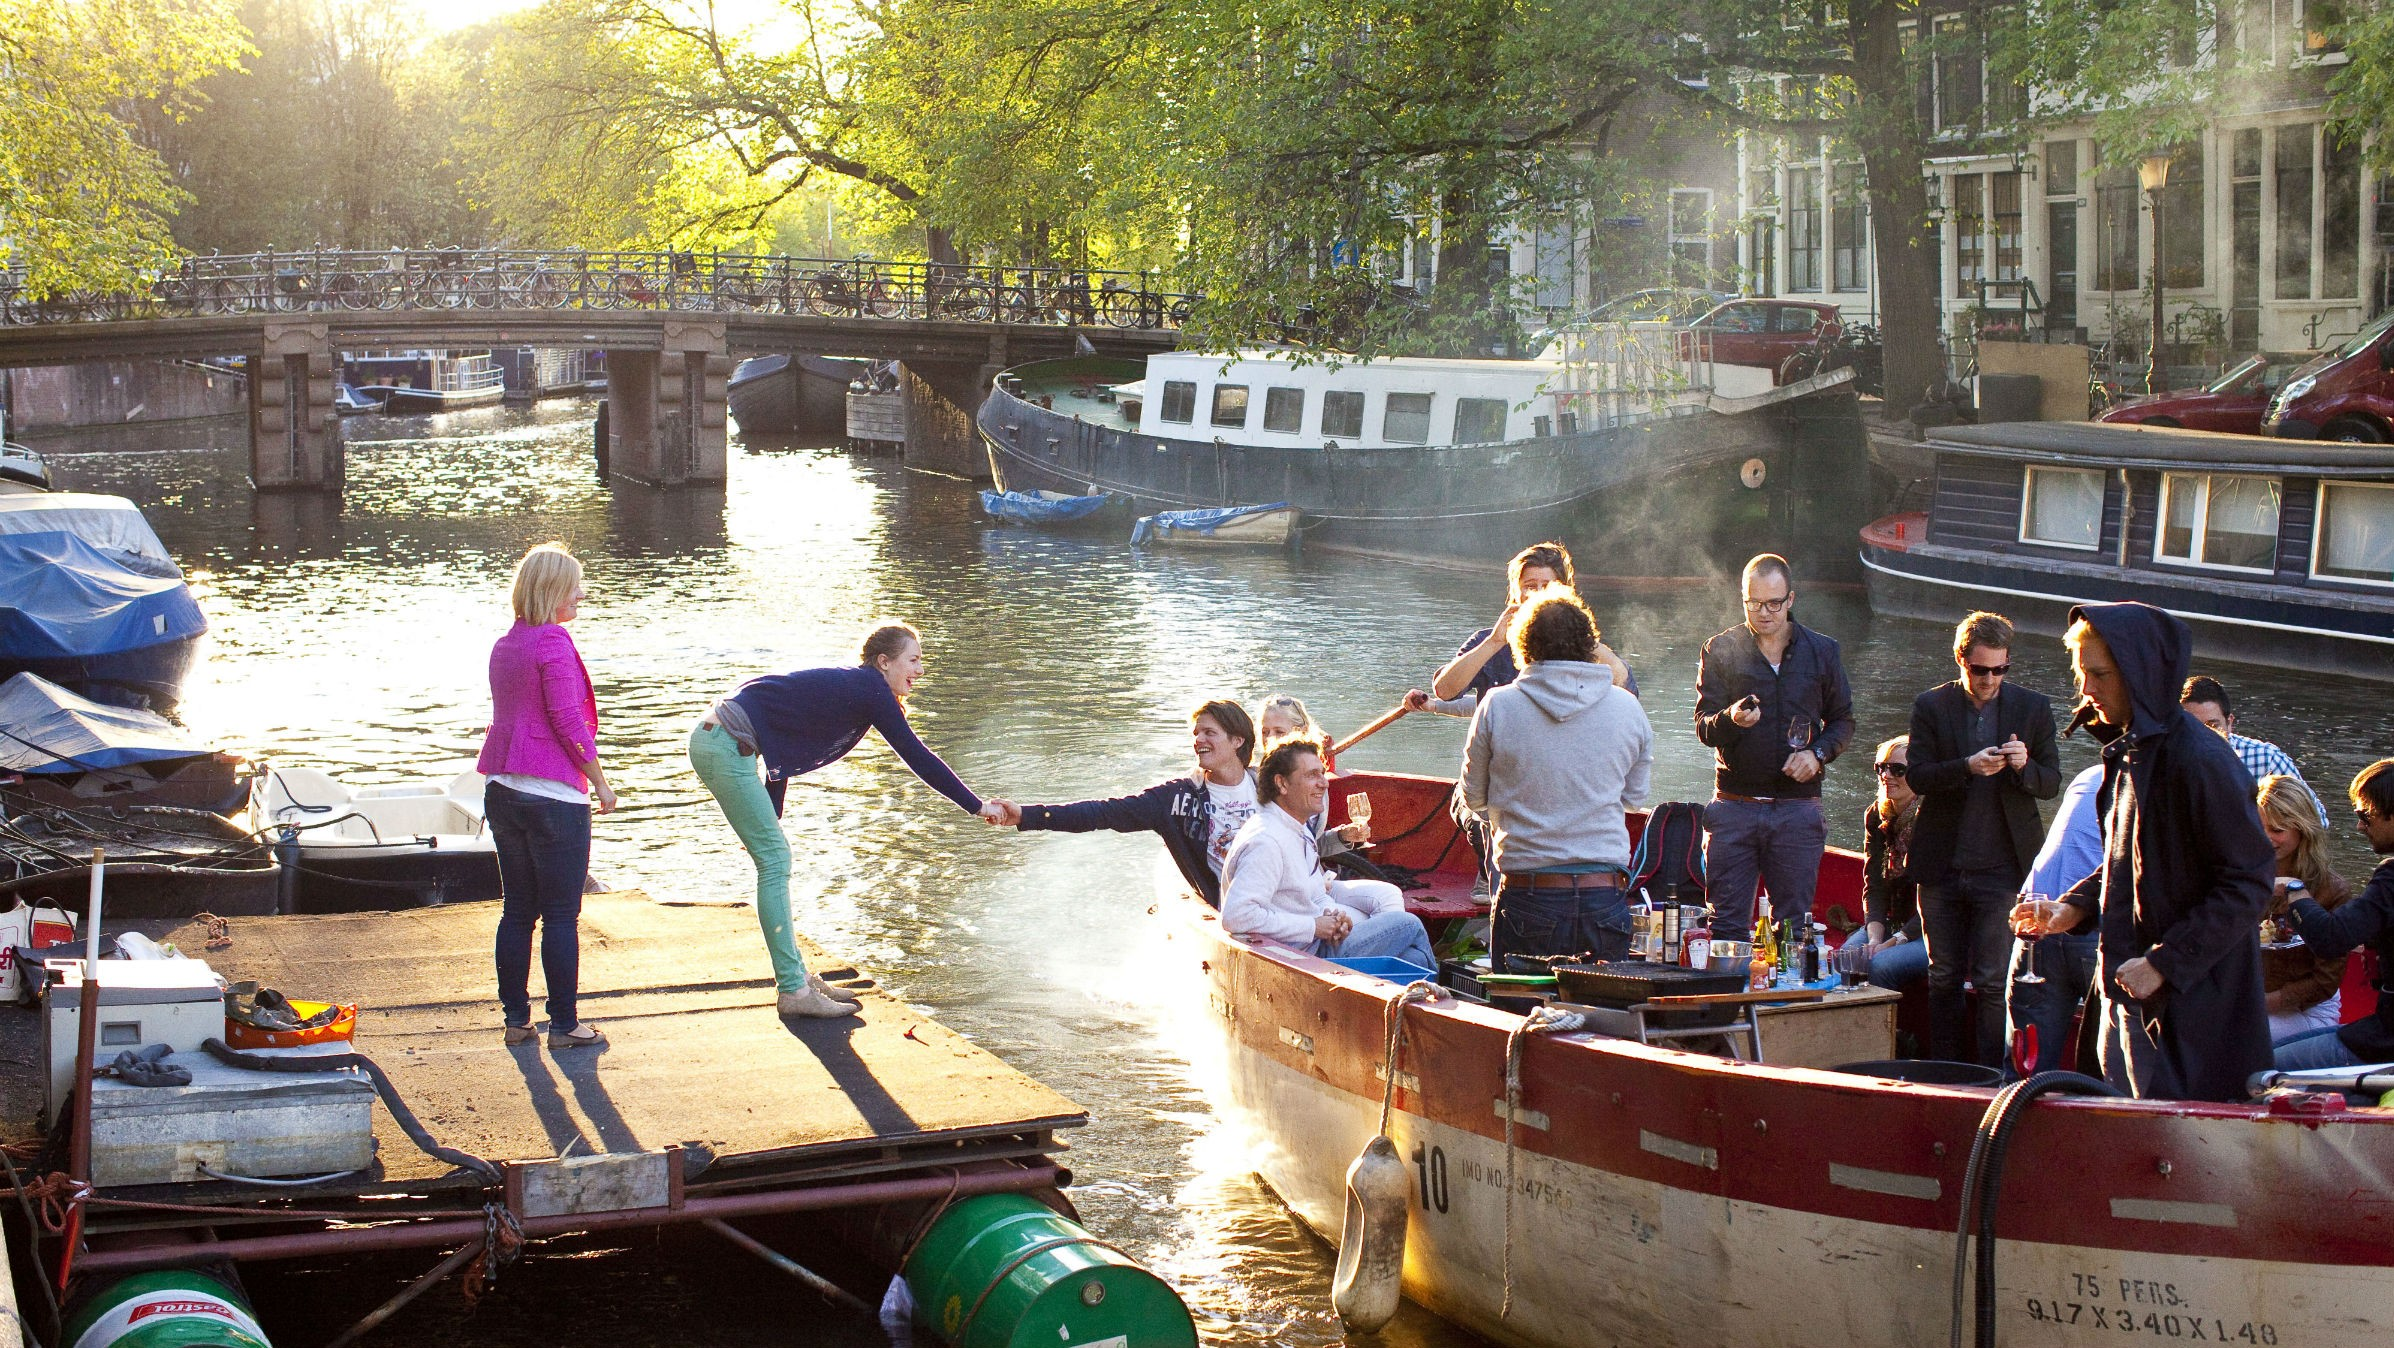 Planning a boating trip in Amsterdam?